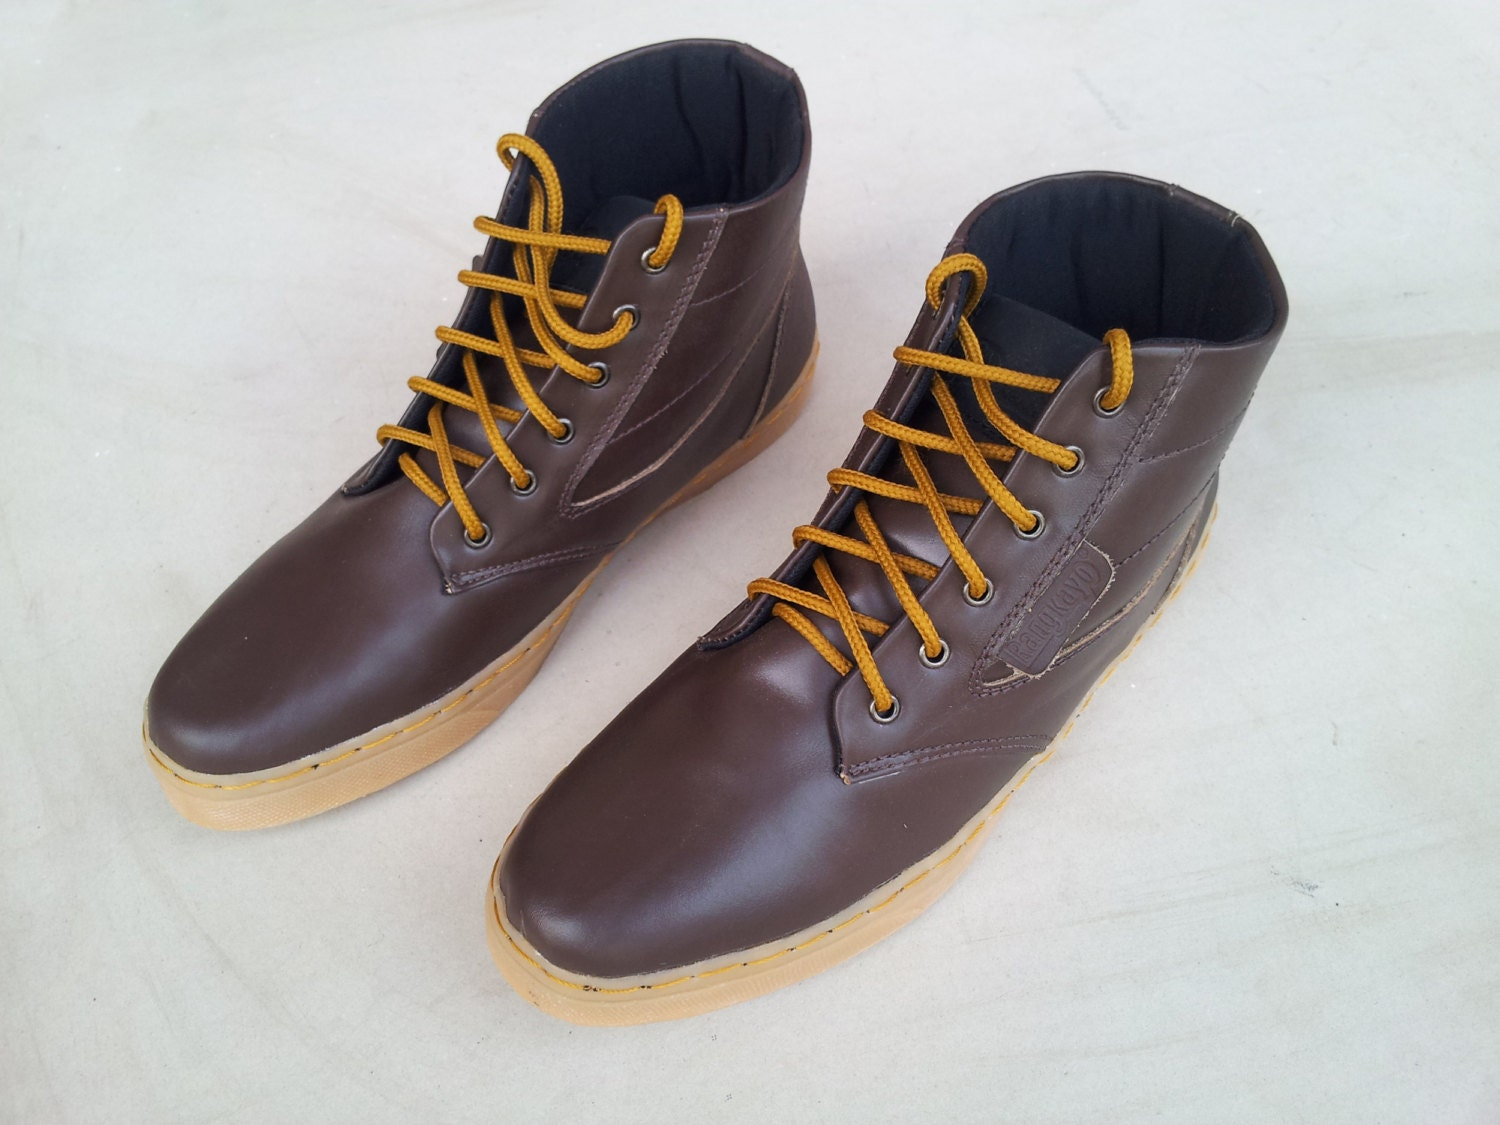 2739d9e3b3a26 dark brown leather shoes handmade Rangkayo casual sneakers ankle boots  Preorder unisex